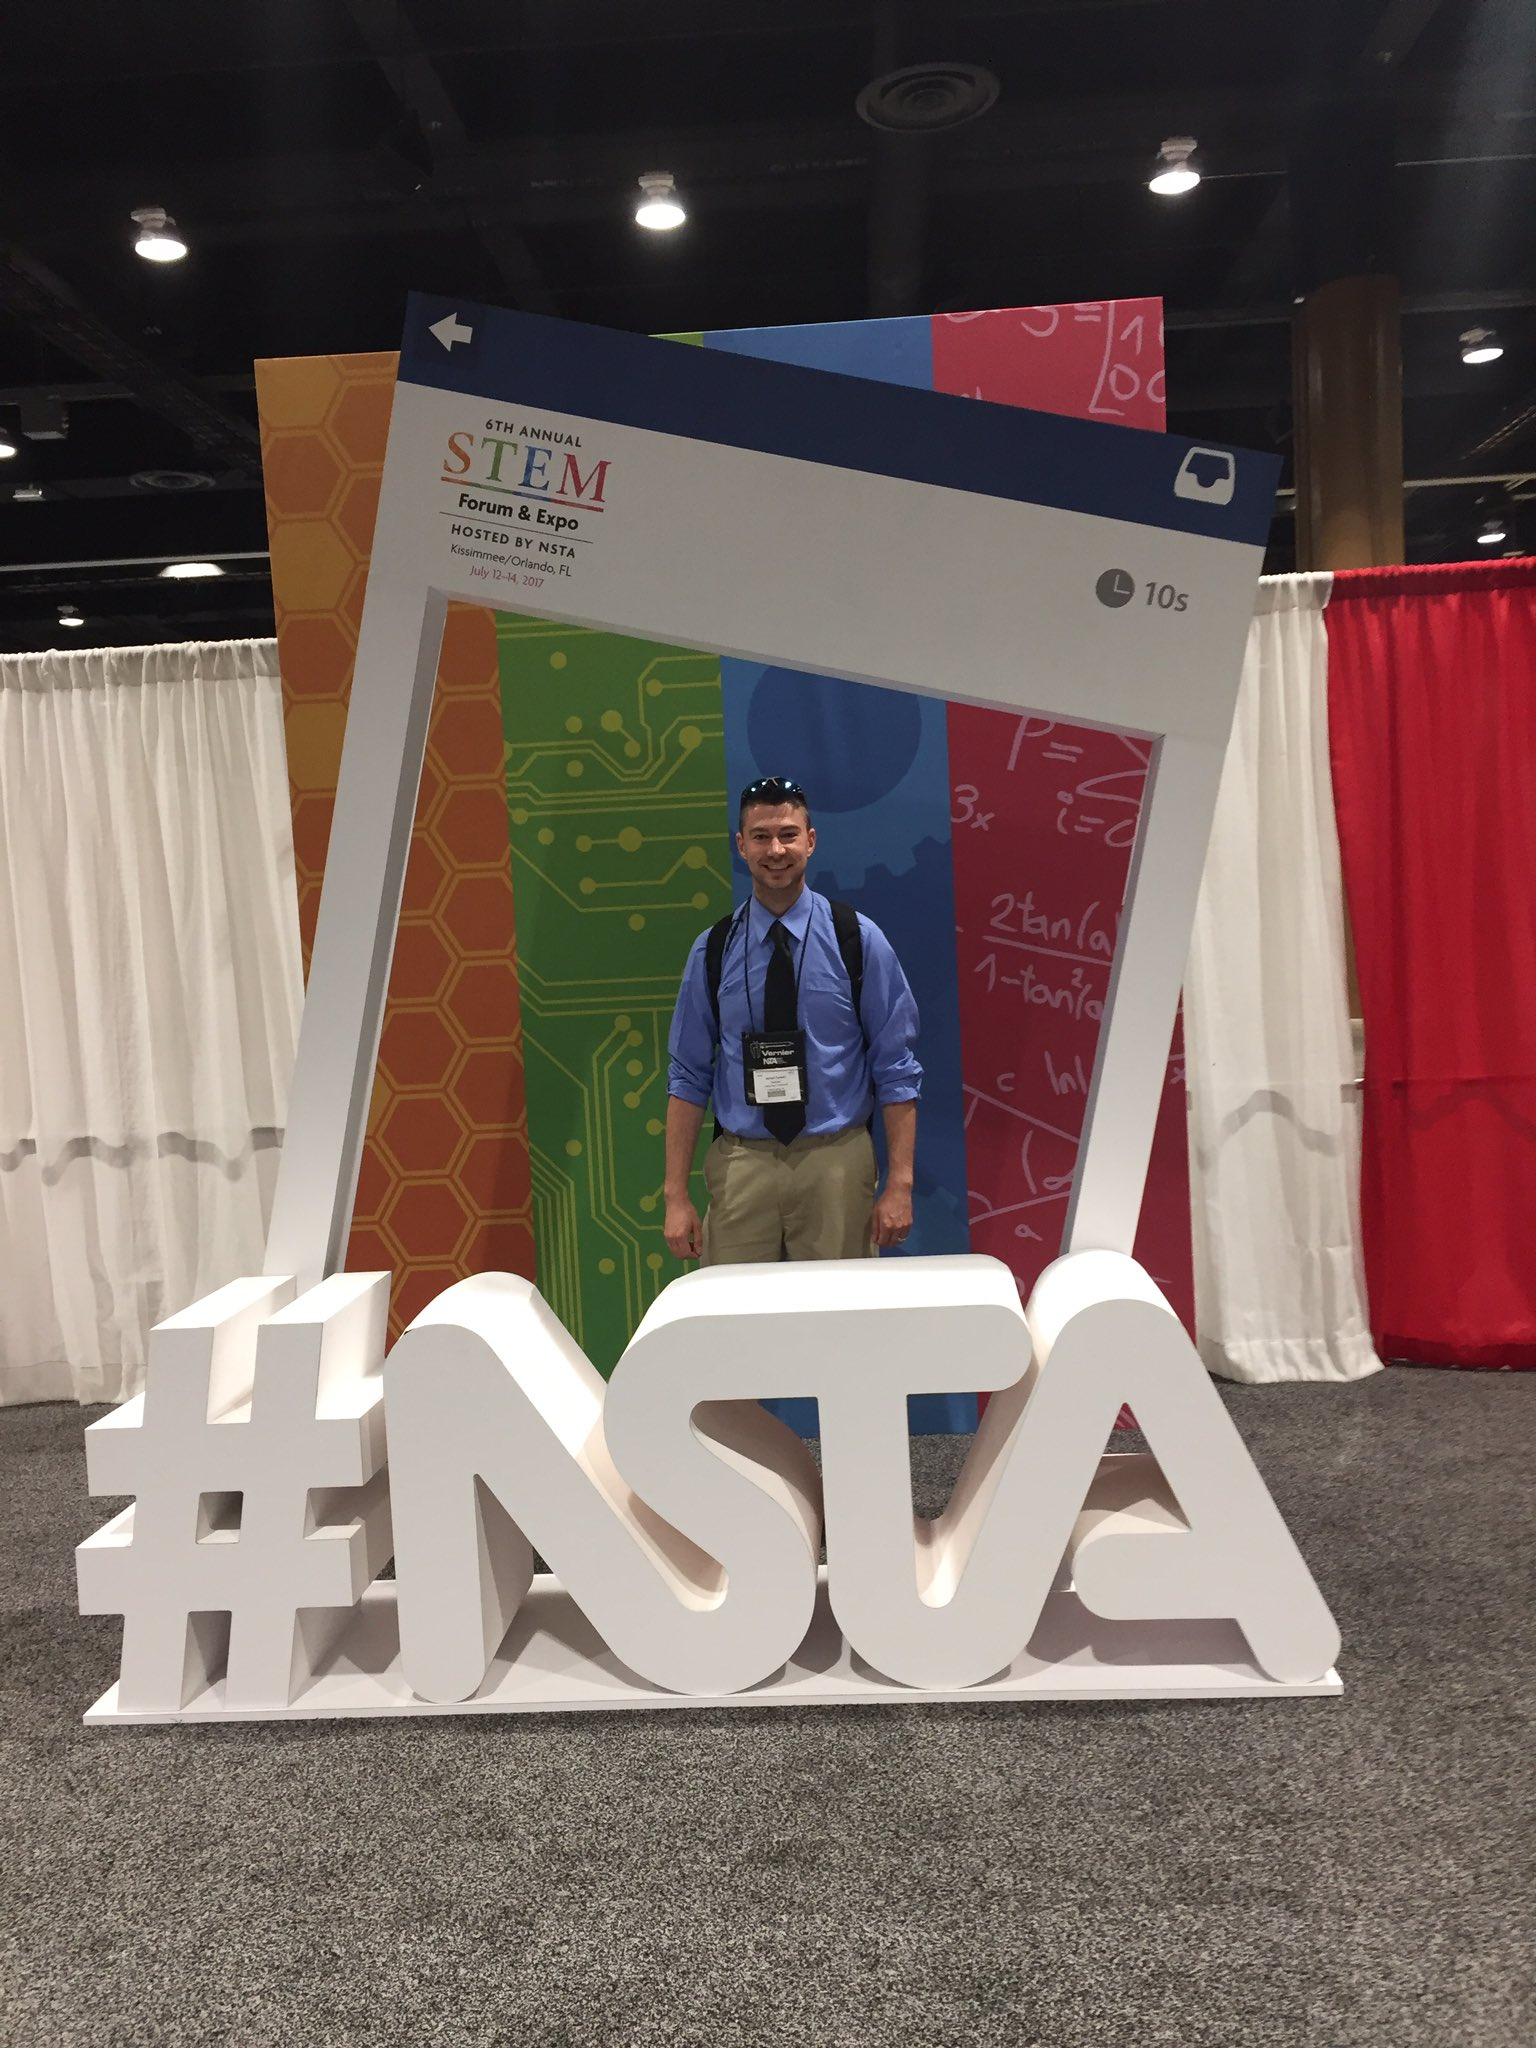 Day two, pumped for more sessions (PV=nRT) 😂 #STEMForum https://t.co/zXmBQgwXGQ